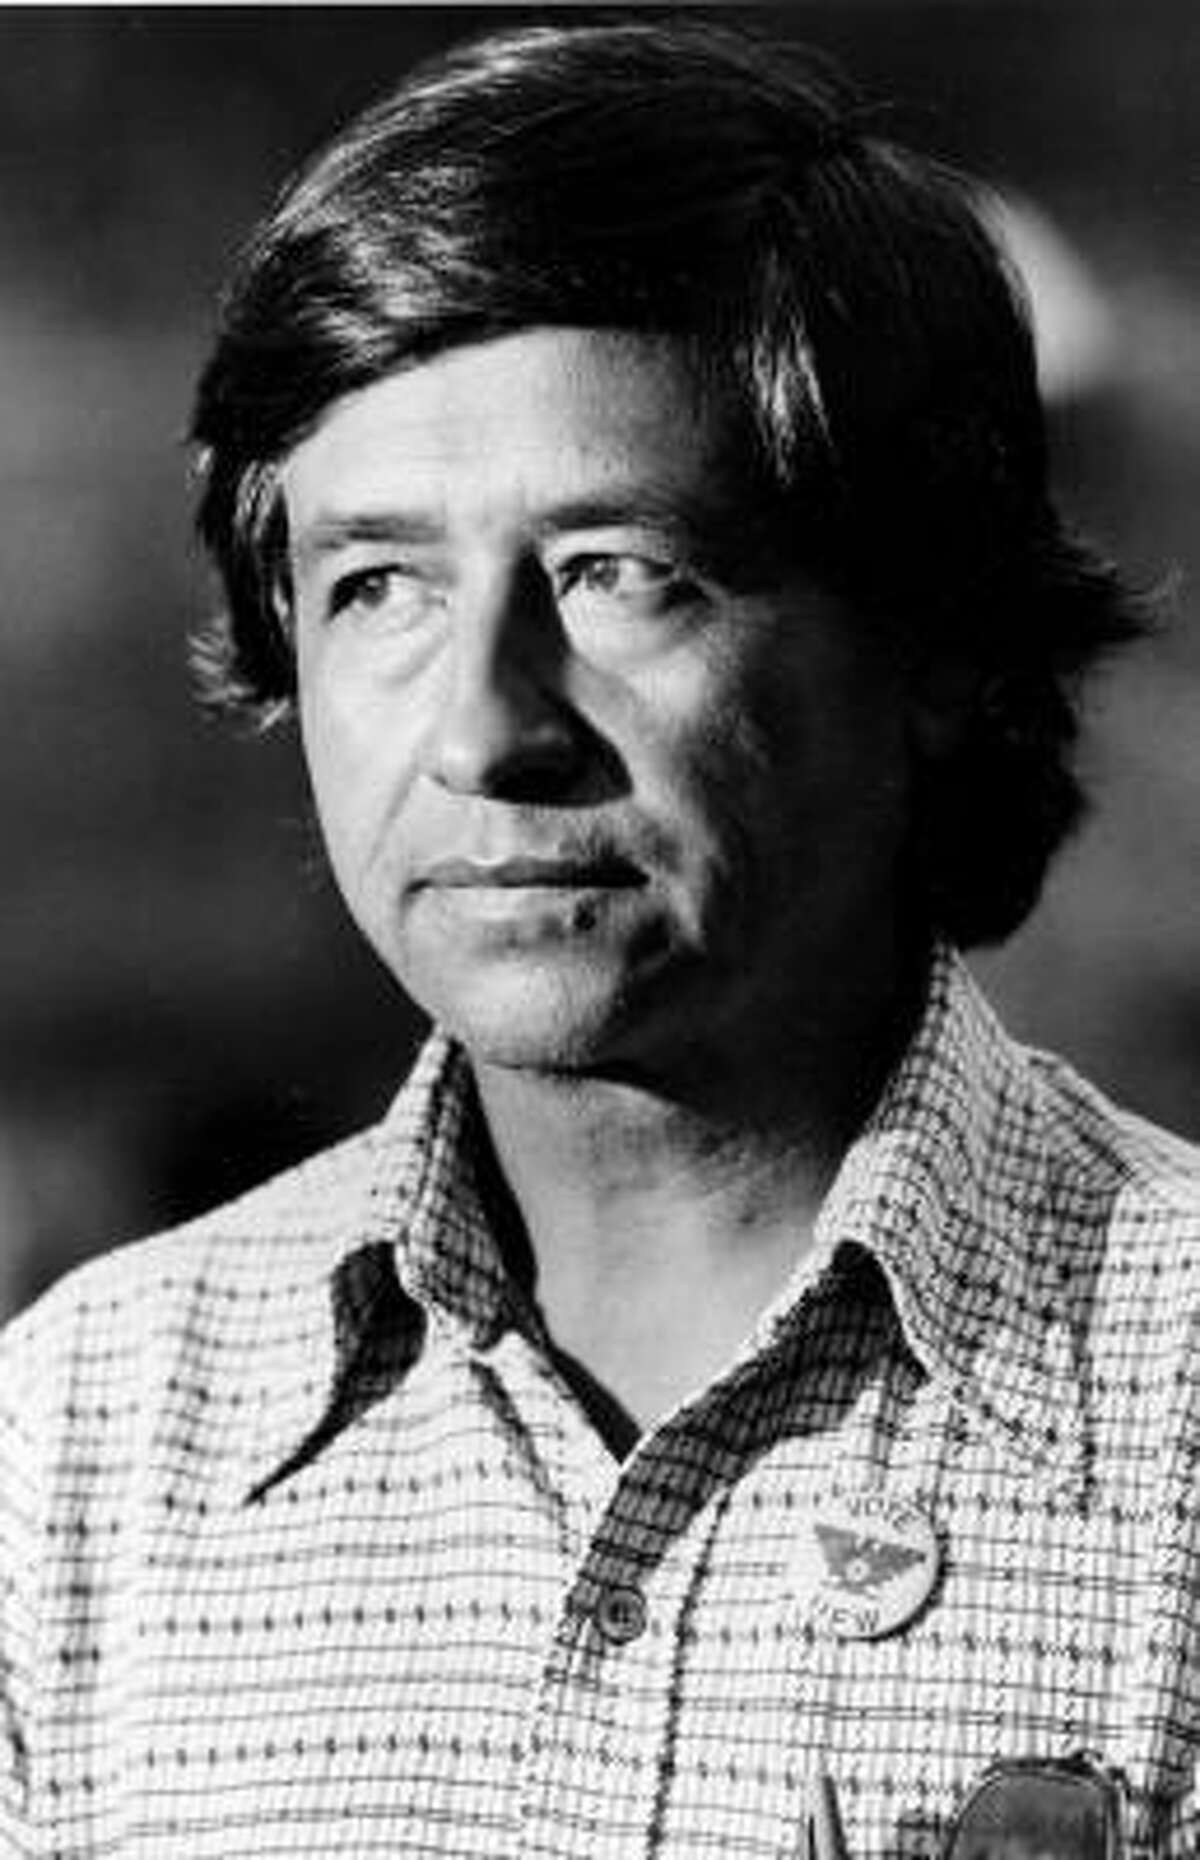 Cesar Chavez was the leader of the United Farm Workers Union.